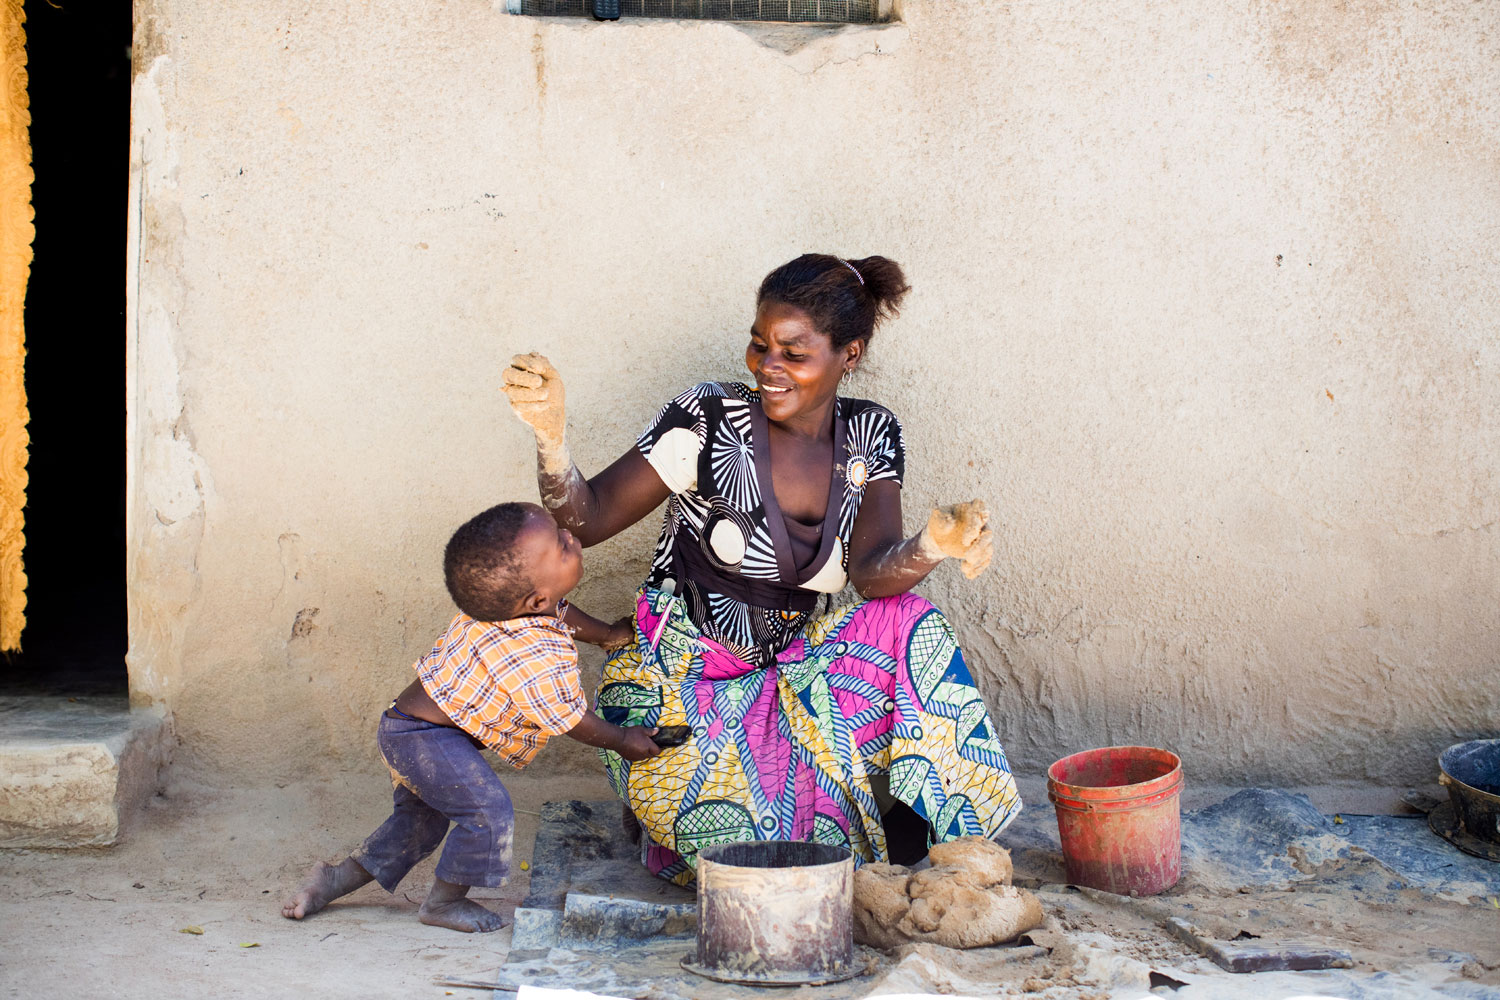 A mom in Tanzania takes a break from work to hug her toddler.